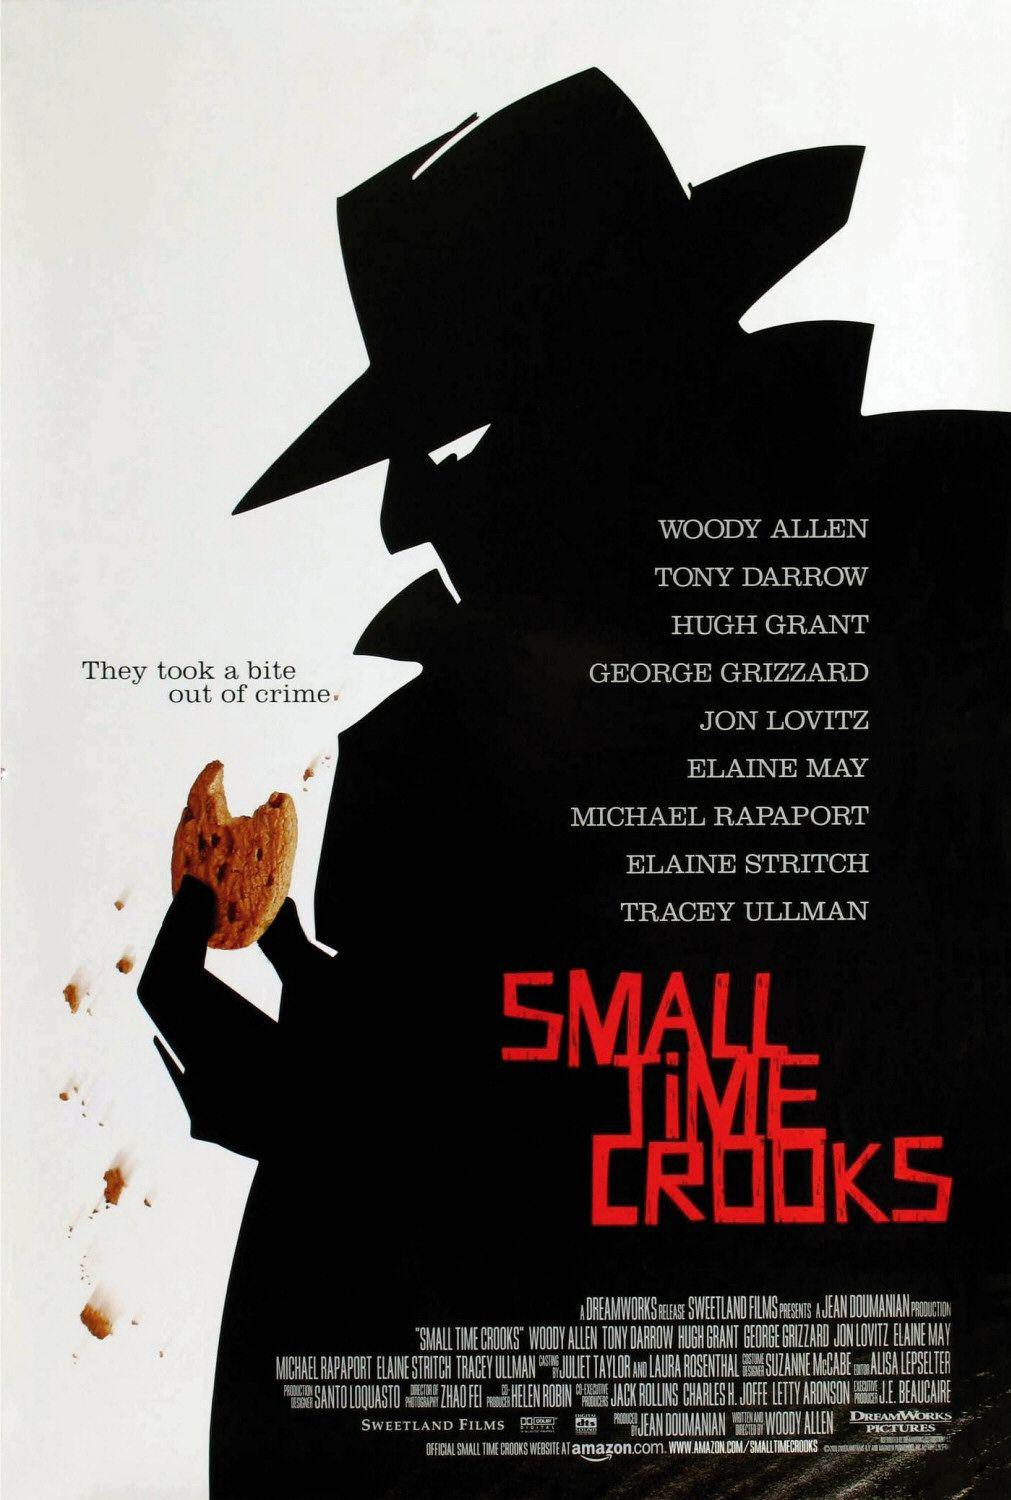 Small Time Crooks - Woody Allen - Tony Darrow - Hugh Grant - George Grizzard - Jon Lovitz - Elaine May - Michael Rapaport - Elaine Stritch - Tracey Ullman - They took a bite out of crime